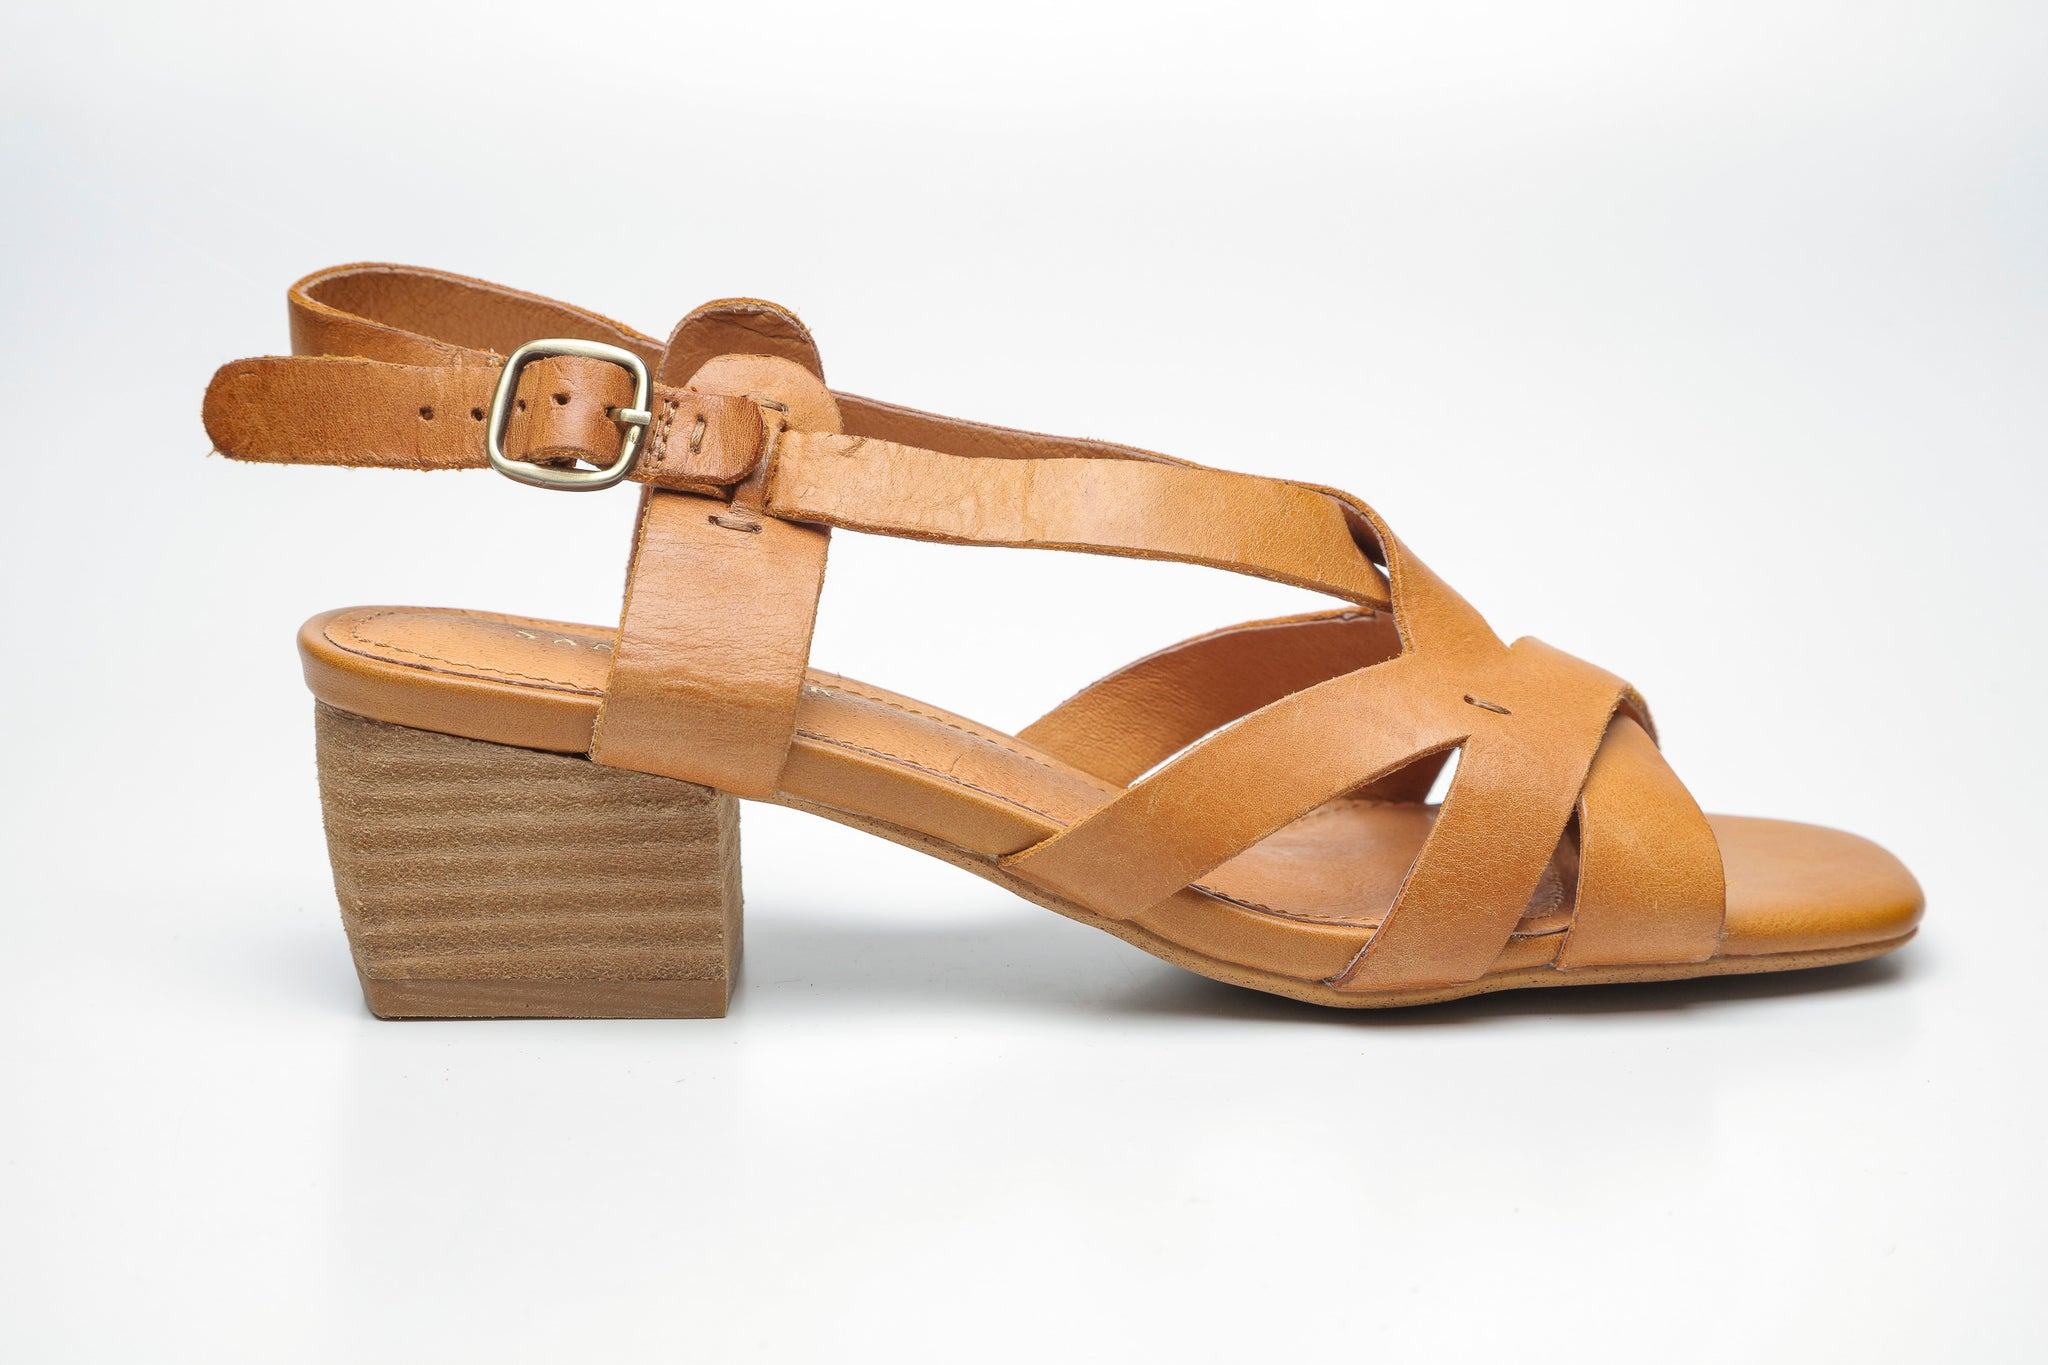 SS19002 Leather Criss Cross Block Heel Sandal up to 30% off - Sam Star shoes